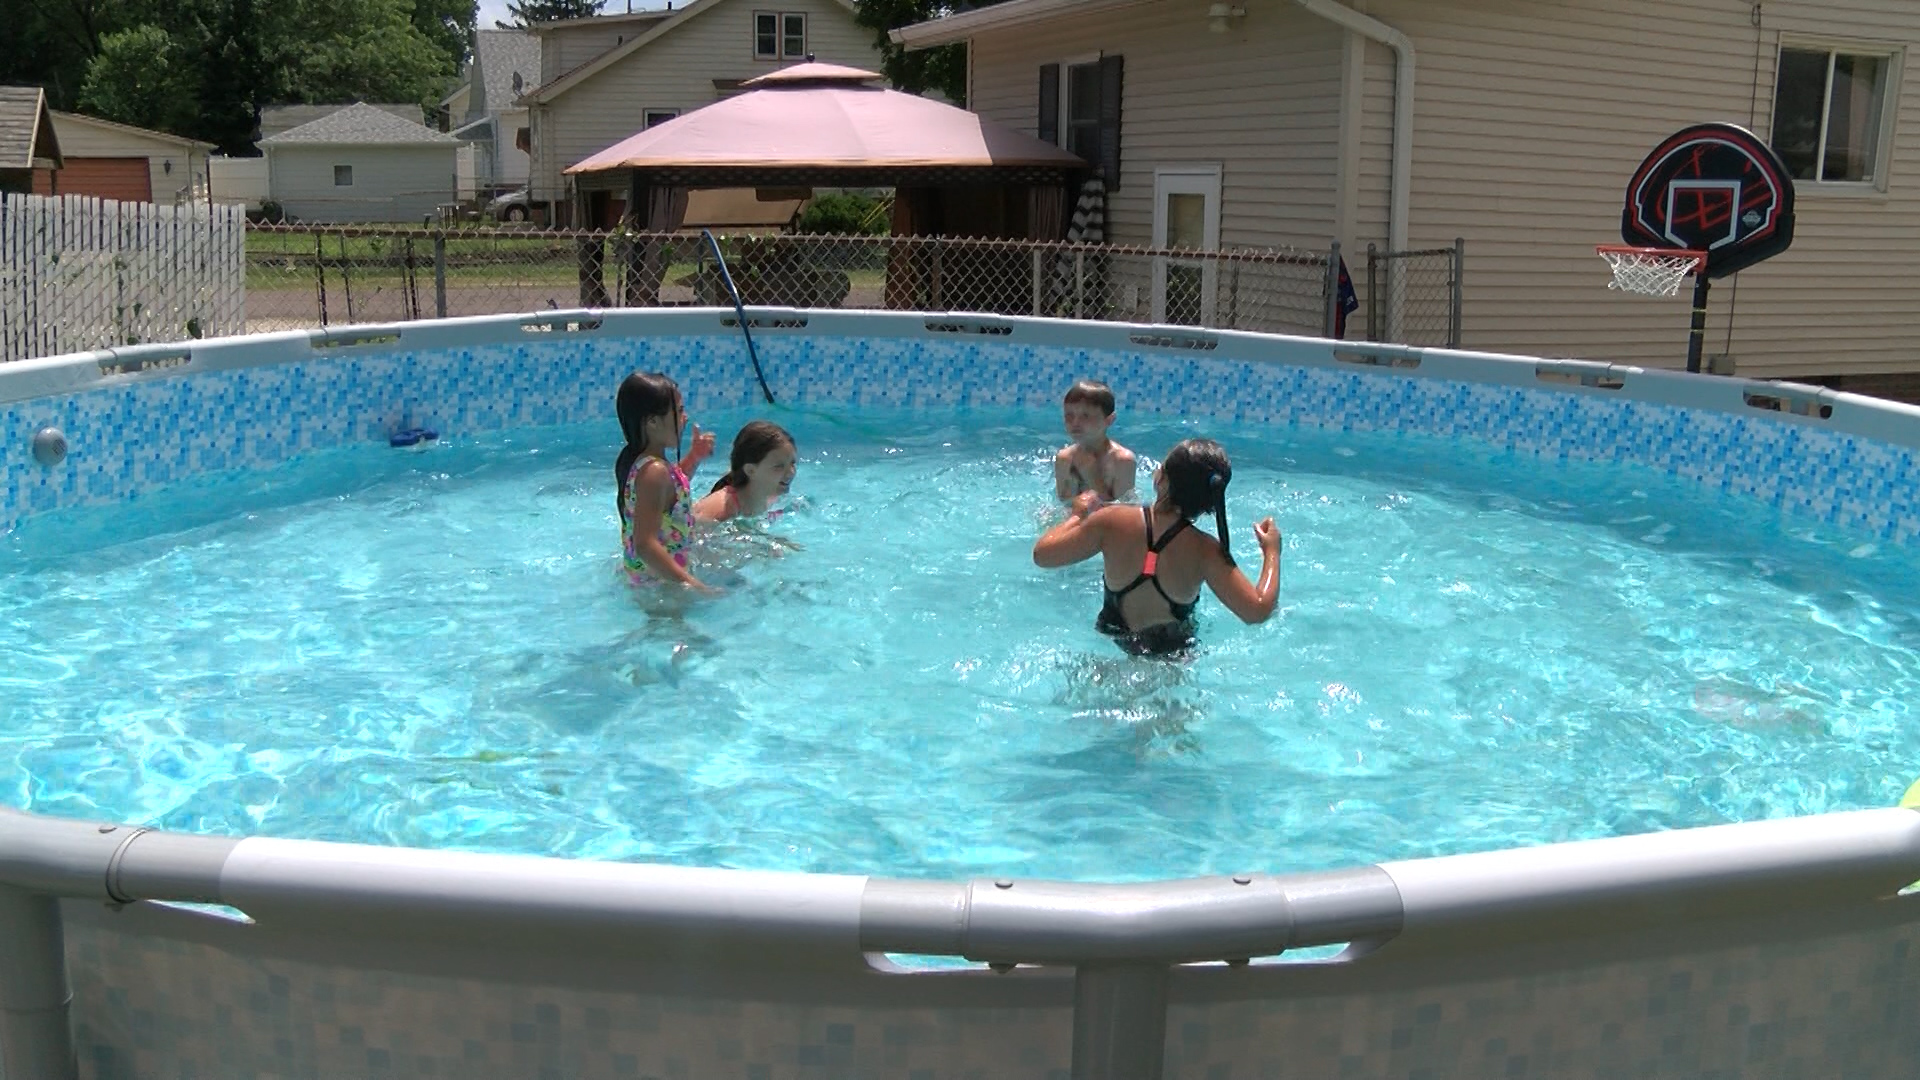 Pool safety_1529532496407.jpg.jpg